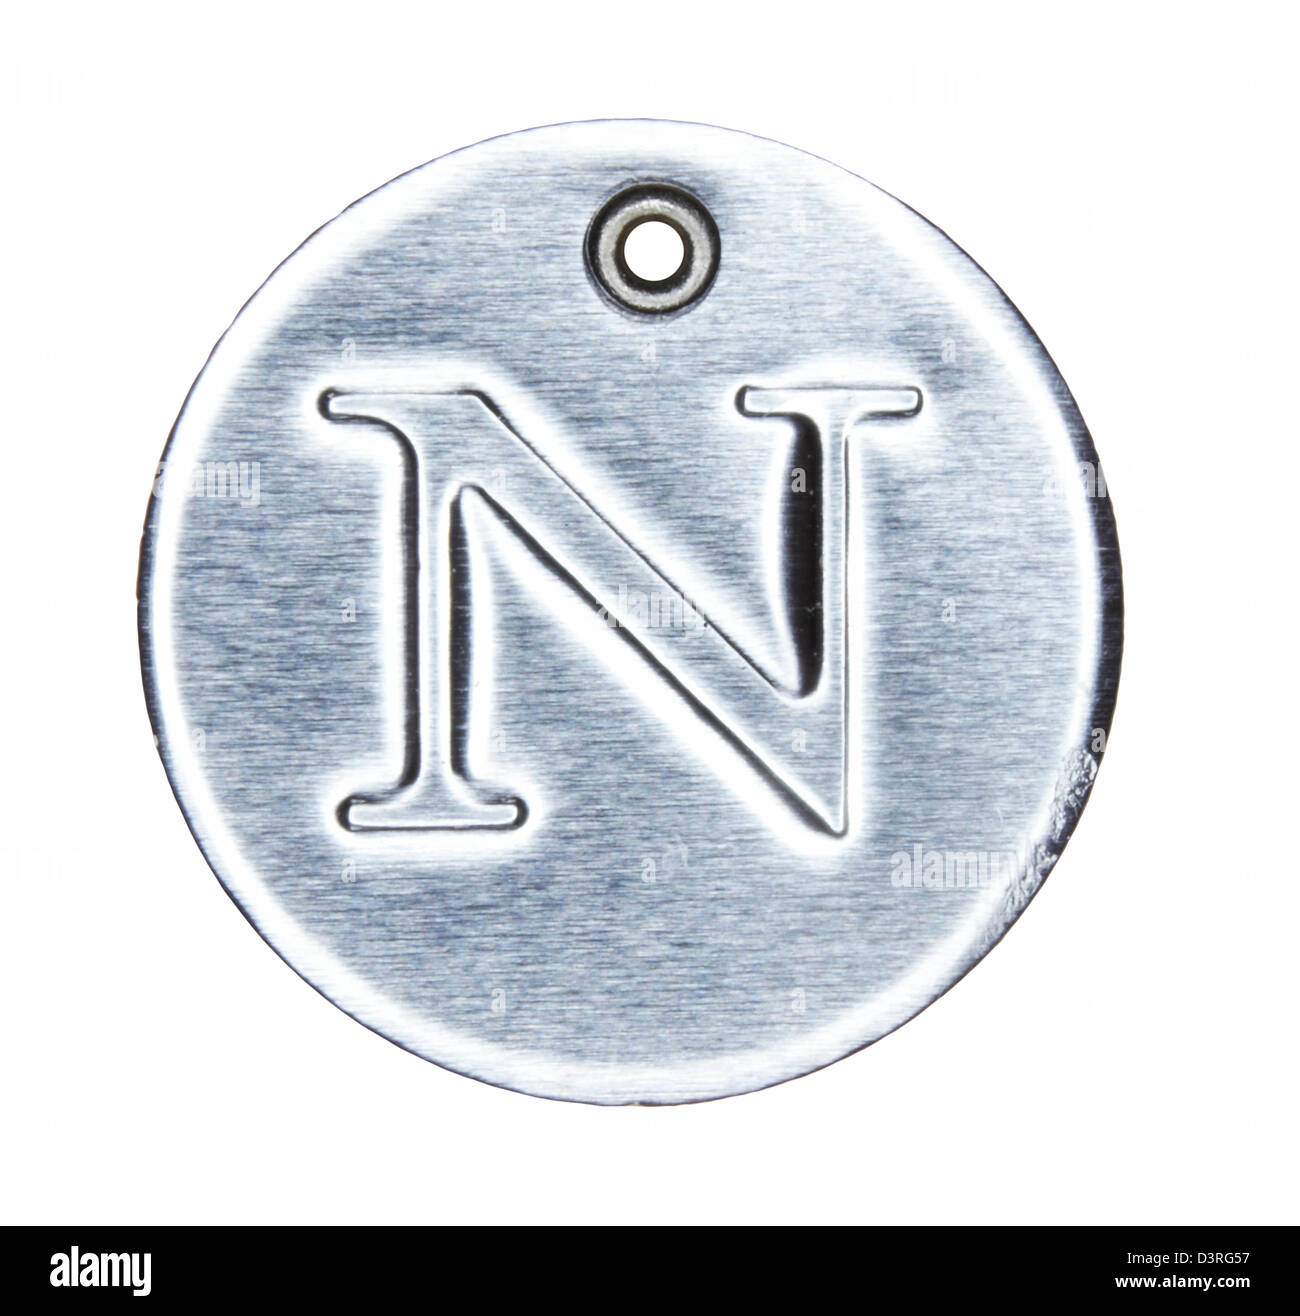 Brushed metal letter of the alphabet N - Stock Image